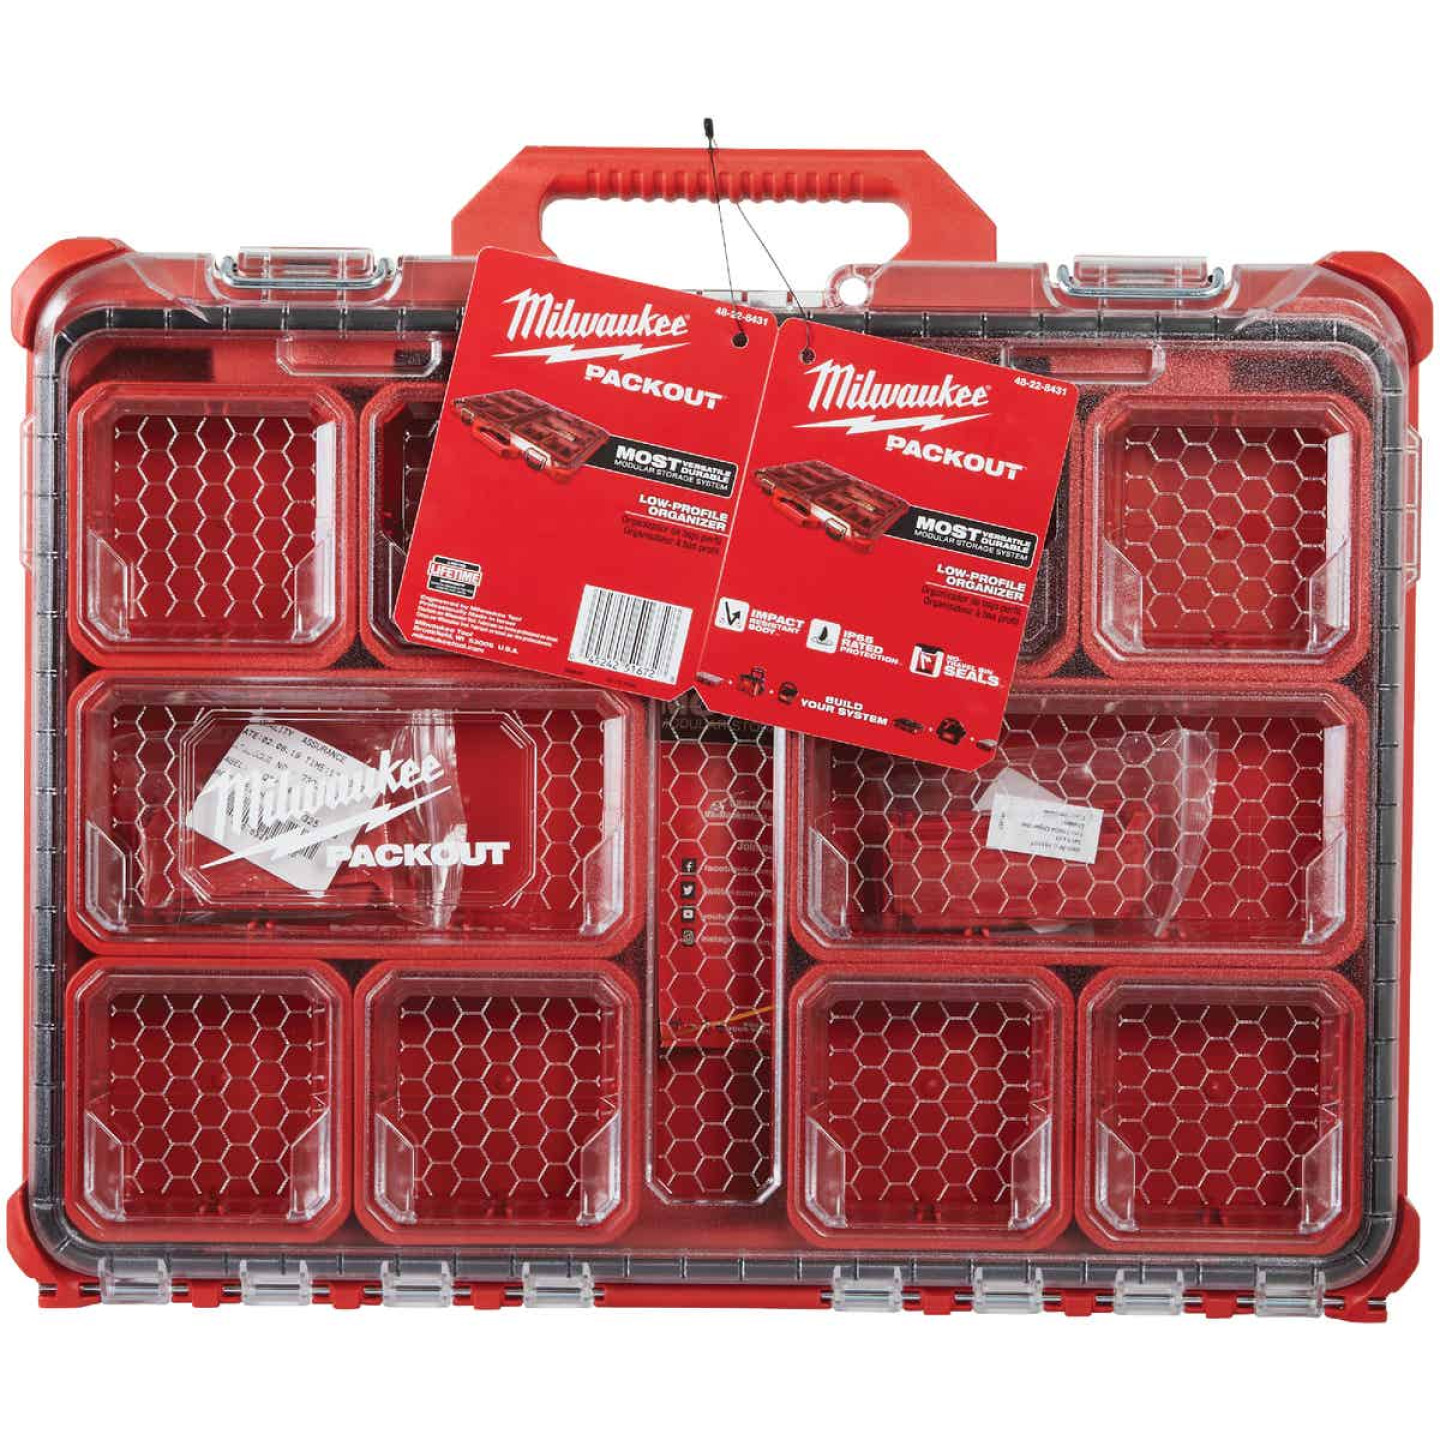 Milwaukee PACKOUT 16.50 In. W x 2.50 In. H x 19.75 In. L Lo Profile Small Parts Organizer with 10 Bins Image 2